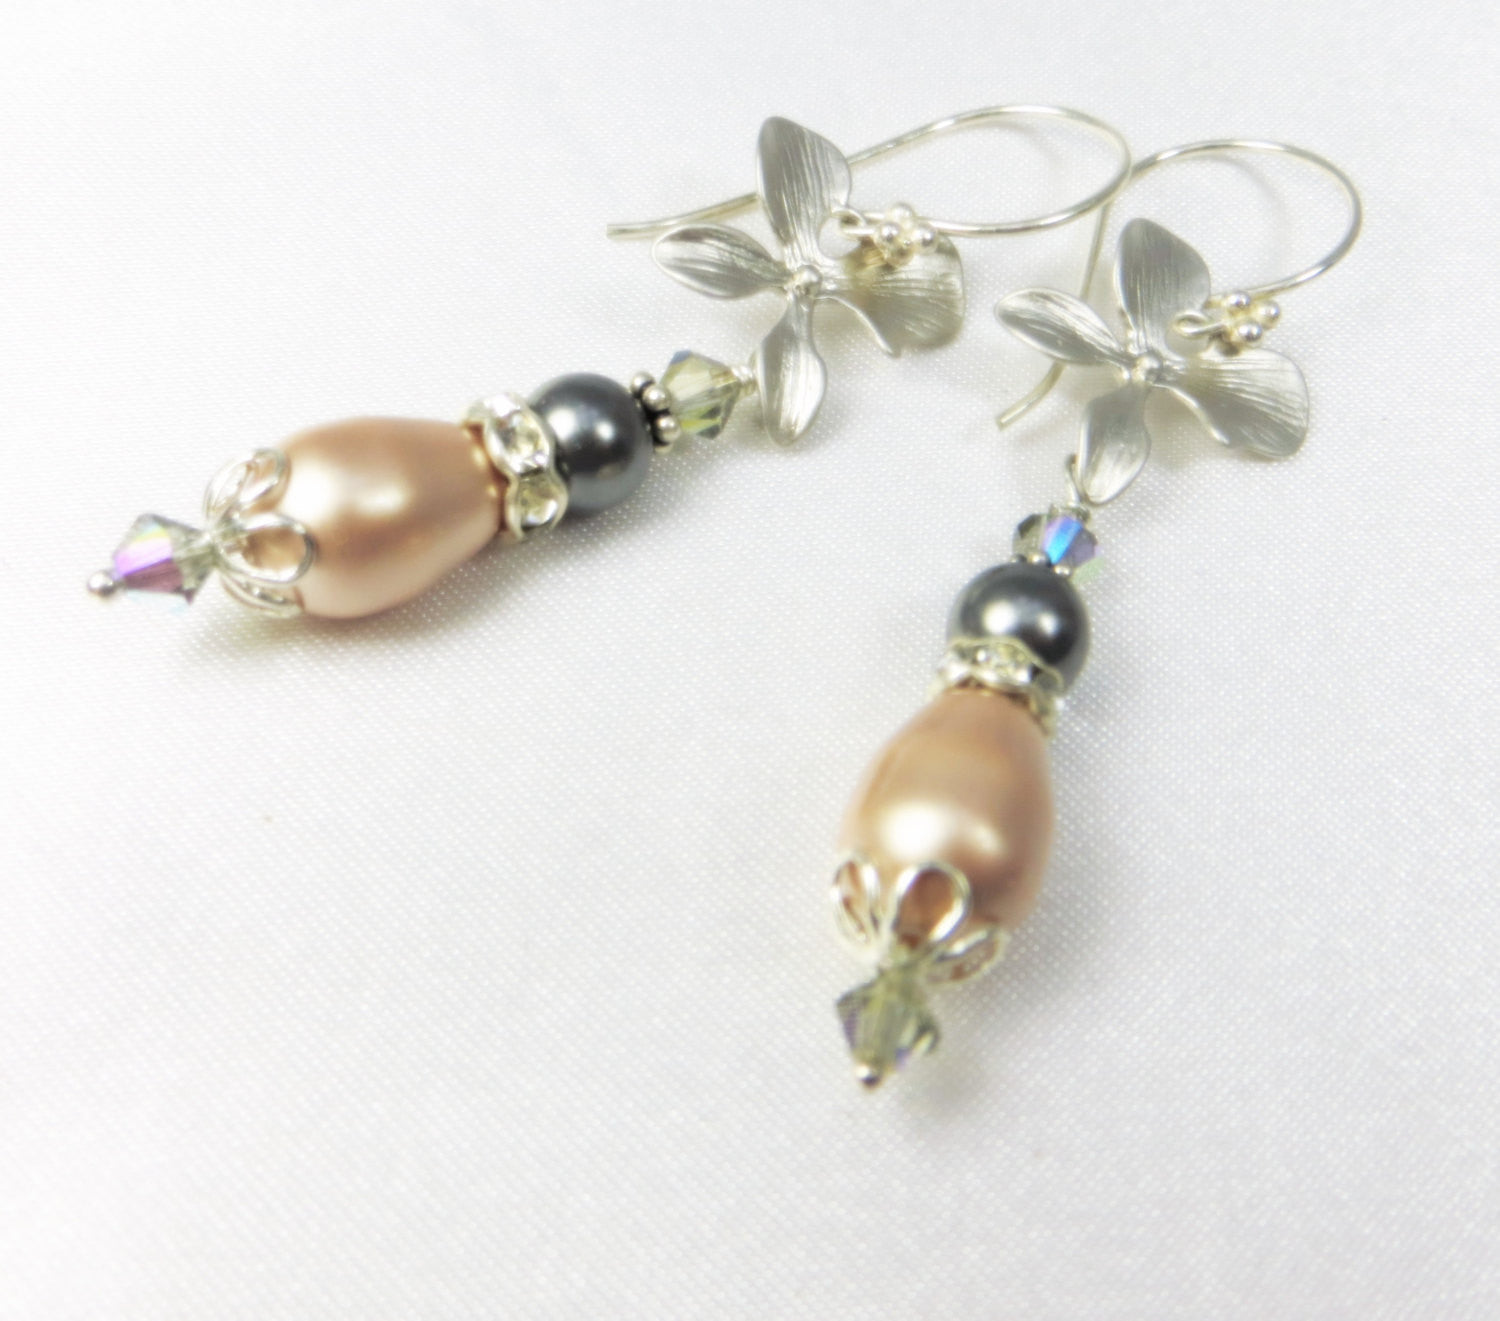 Bridal or Bridesmaid Silver Orchid Earrings with Swarovski Vintage Pink Champagne and Slate Gray Pearls on sterling silver - Odyssey Creations